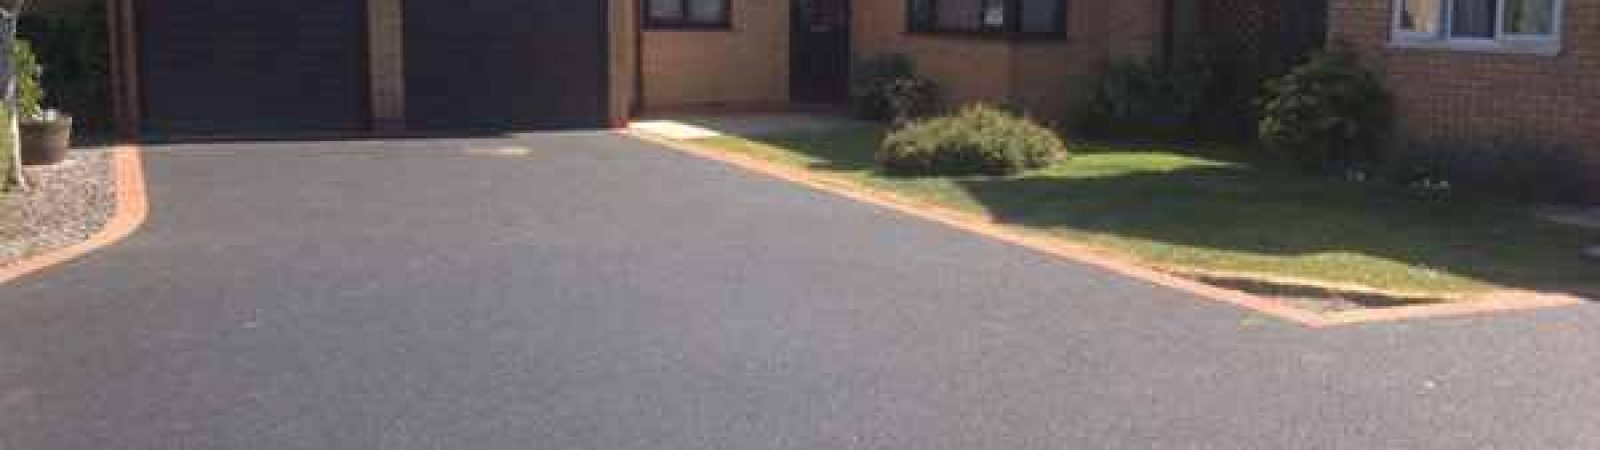 In 2021, are driveways a good investment?